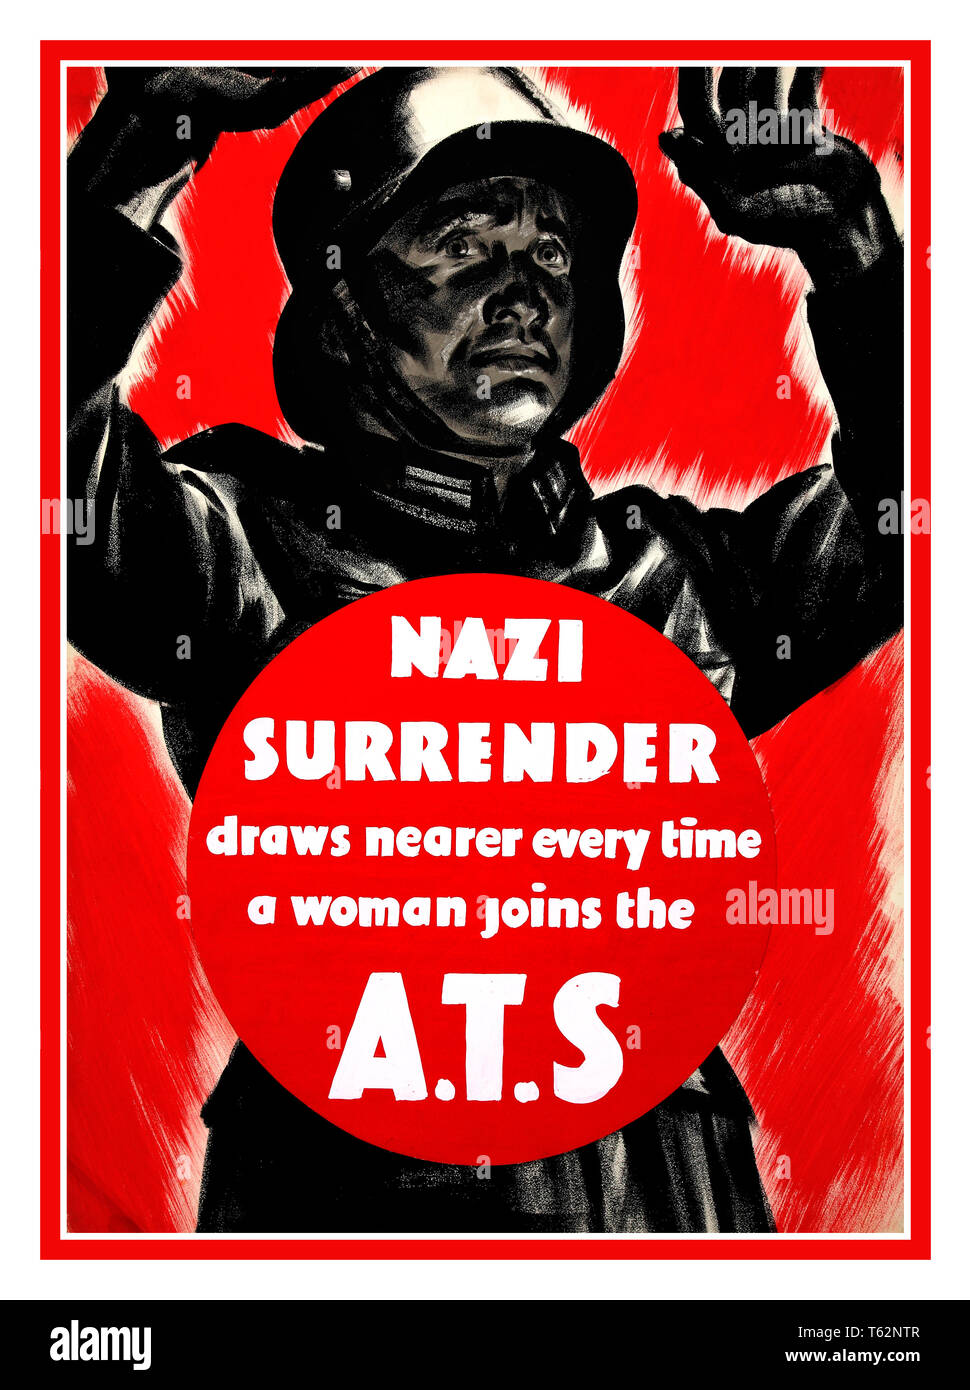 Vintage Recruitment ATS 1940's WW2 UK British Propaganda poster 'Nazi surrender draws nearer every time a woman joins the A.T.S' 1939-1946 - Stock Image